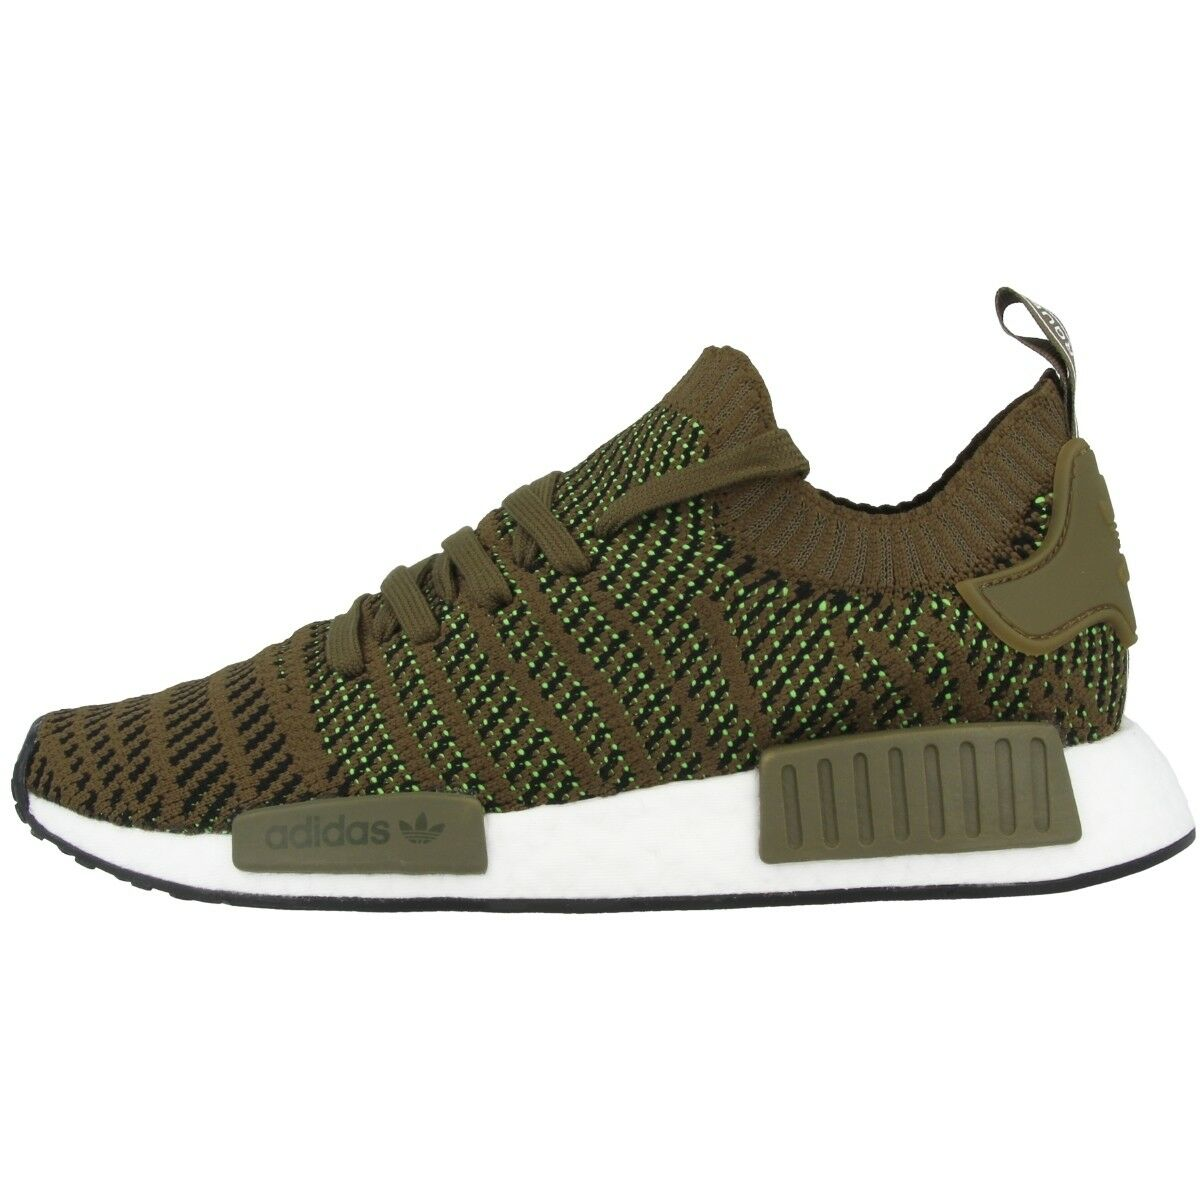 Adidas Nmd R1 Stlt Pk Primeknit shoes Men's Casual Sneakers Olive Cq2389